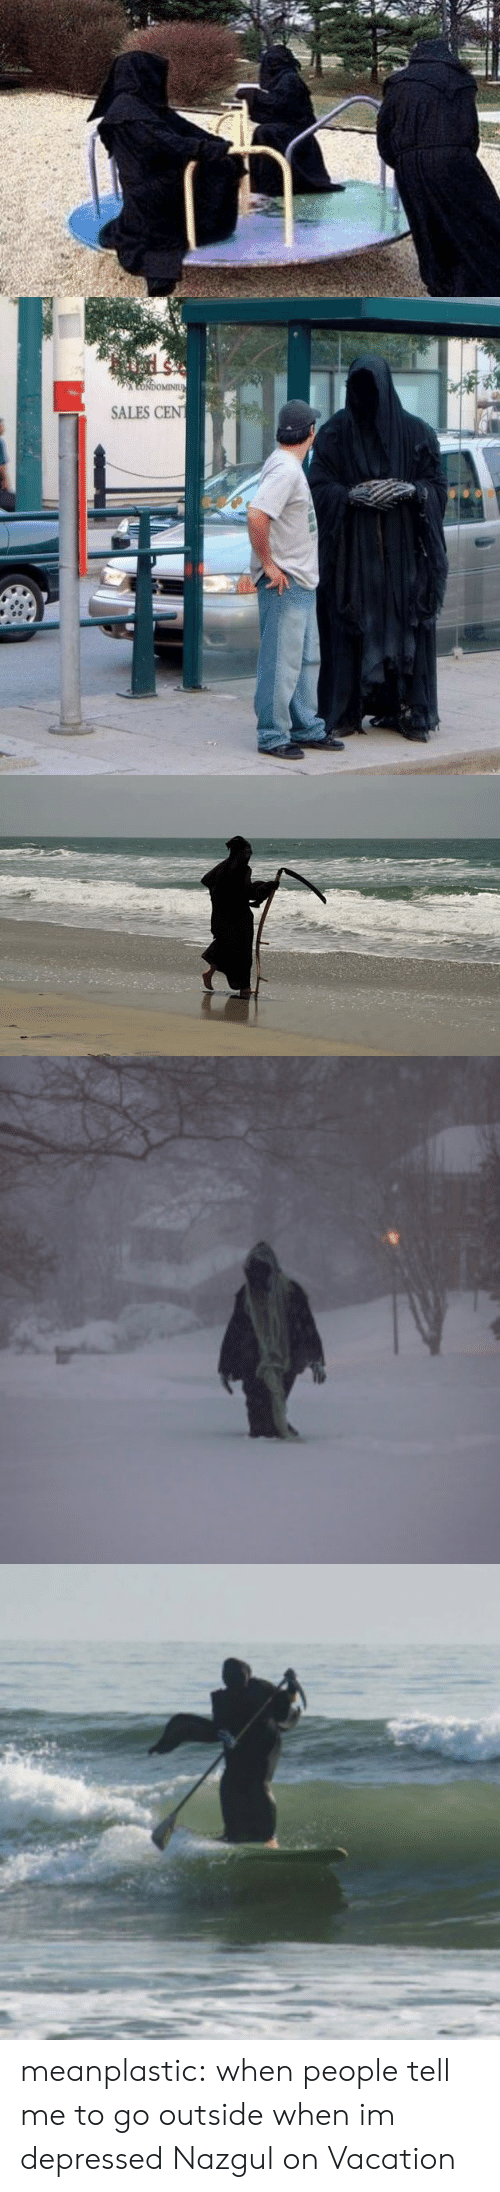 Tumblr, Blog, and Http: CoNdoMINIU  SALES CEN meanplastic:  when people tell me to go outside when im depressed  Nazgul on Vacation